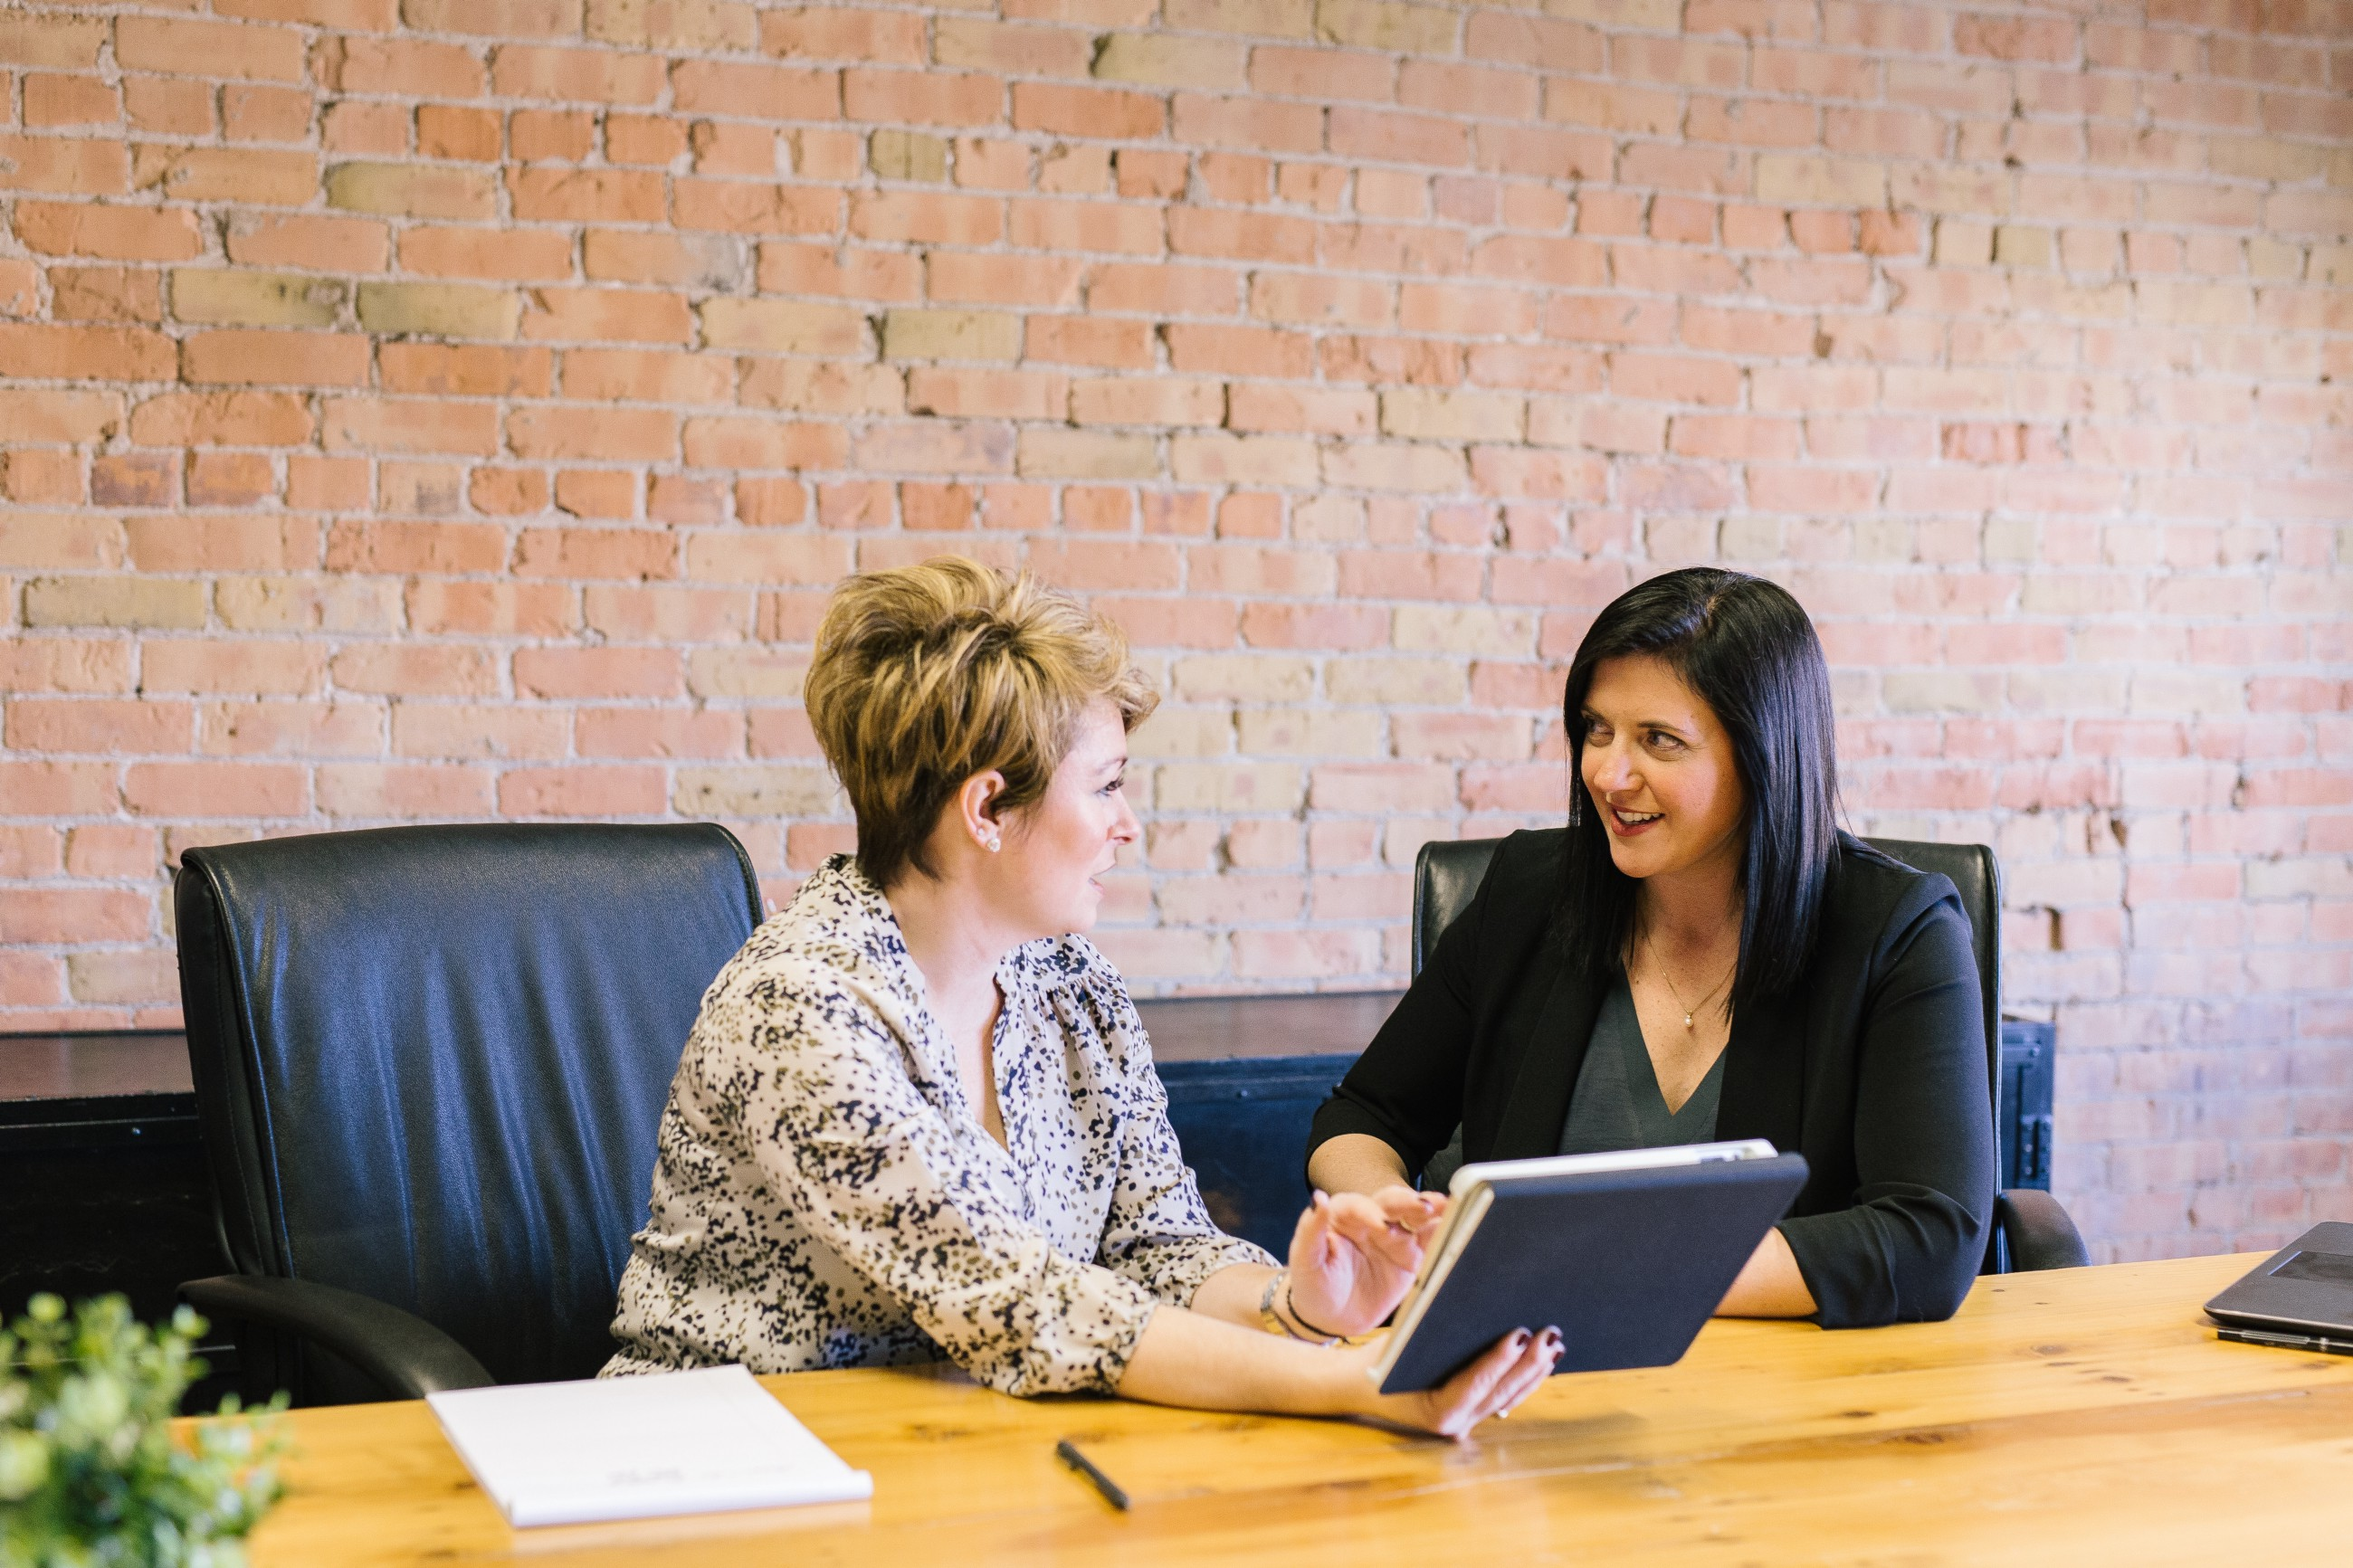 3 Reasons to Work With a Professional Coach